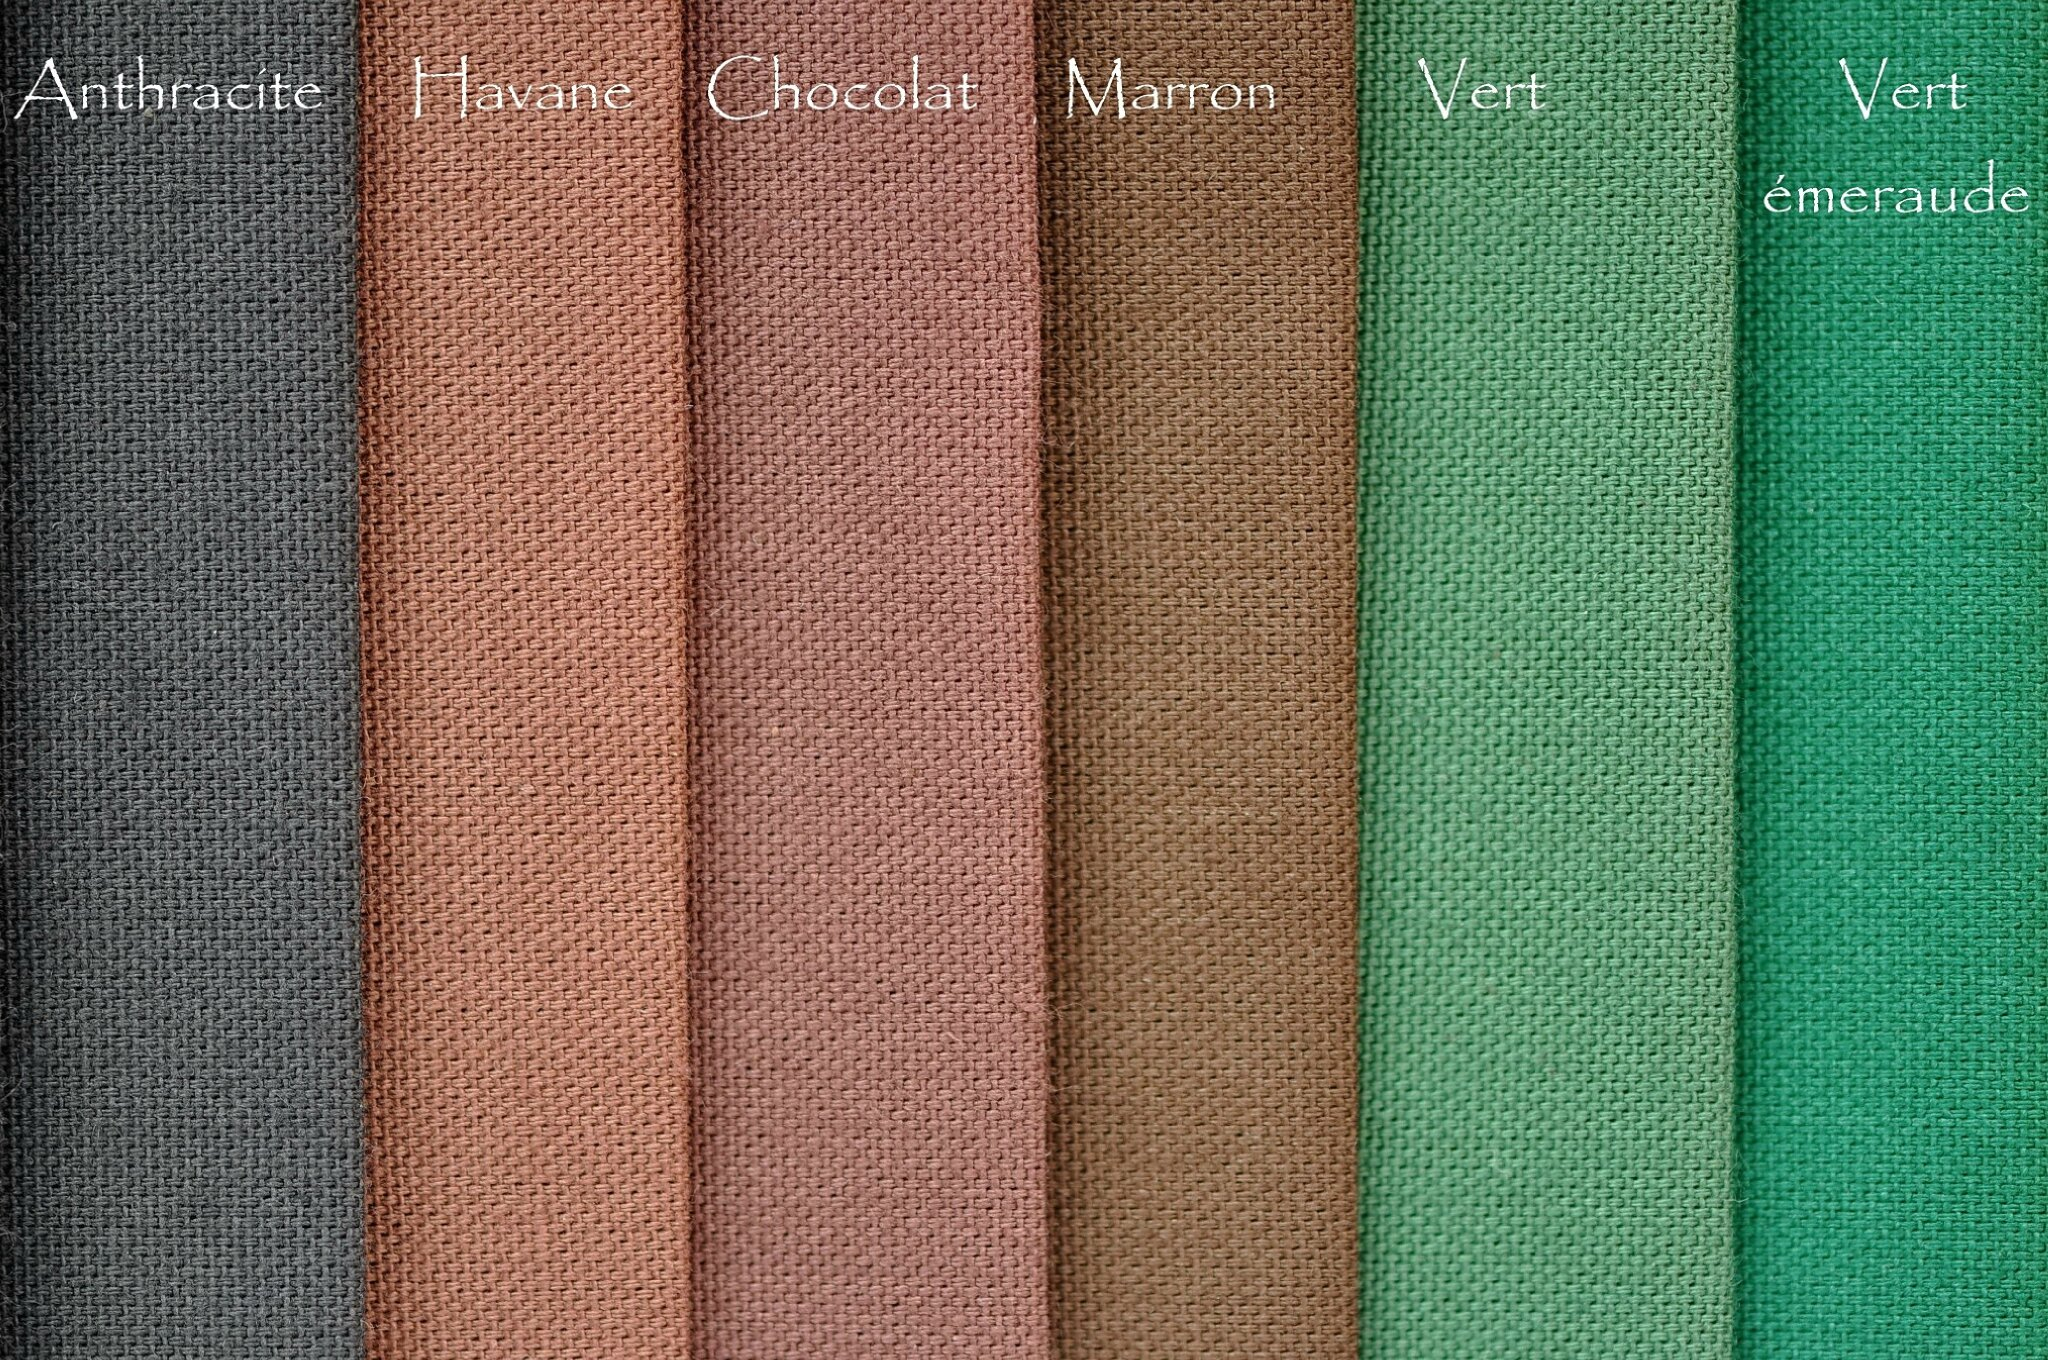 anthracite-havane-chocolat-marron-vert-vert-emeraude